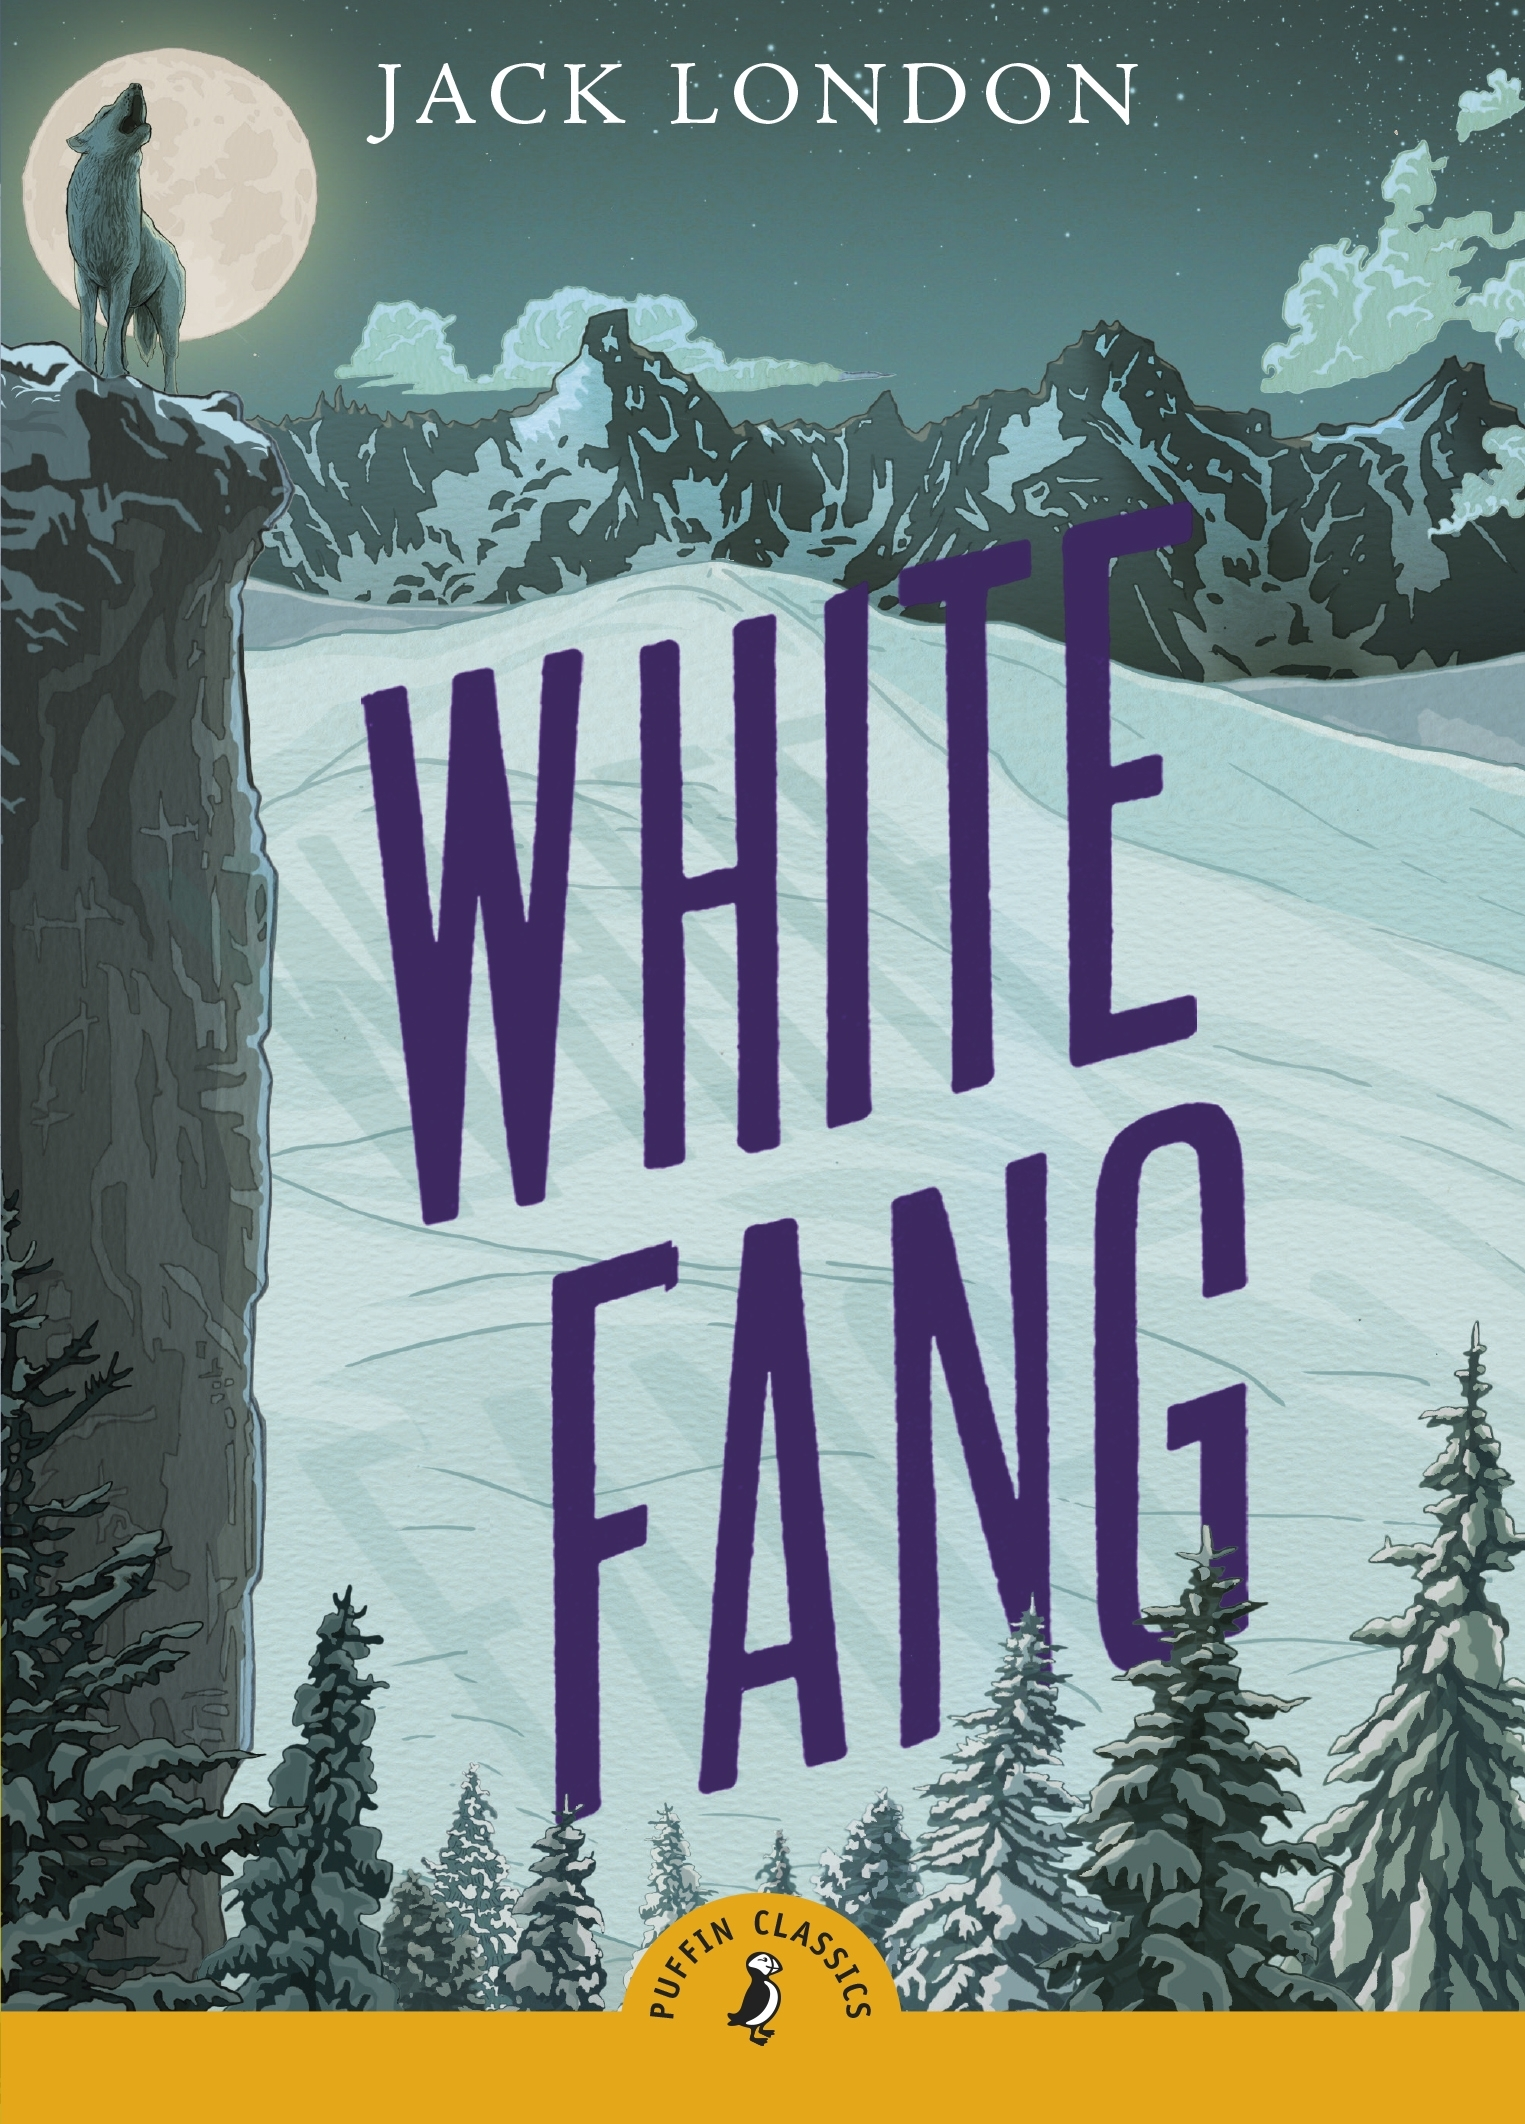 an analysis of law of survival in white fang by jack london Free study guide for white fang by jack london - free book notes  he also  learns that he must learn to fight to survive, for the law of nature.